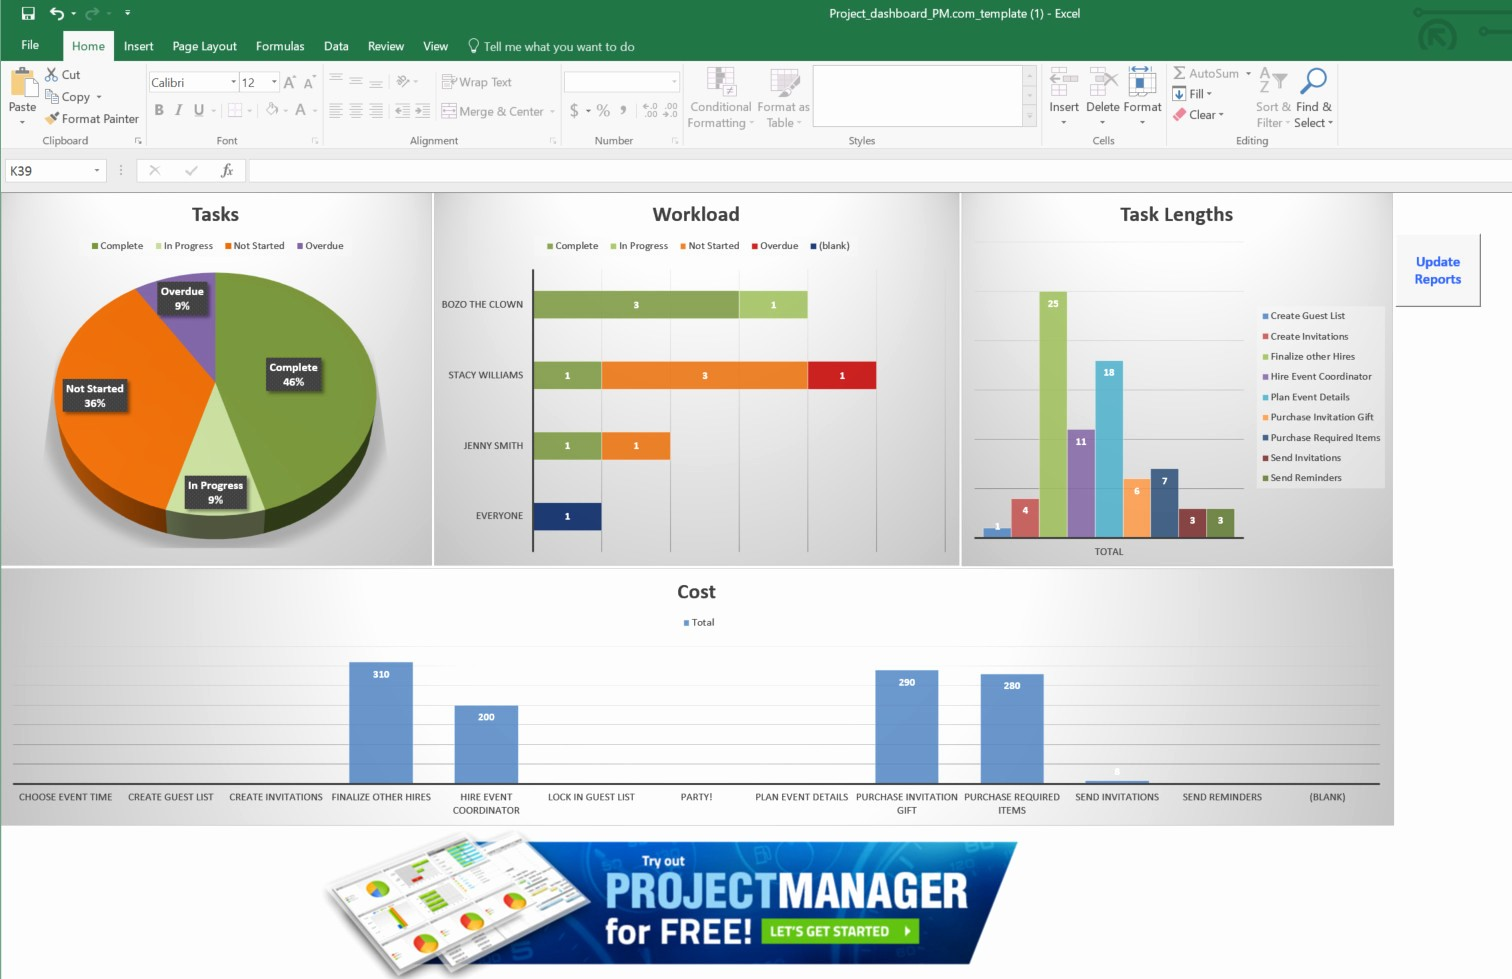 Excel Project Management Templates Free Beautiful Project Dashboard Excel Template Free Download Project